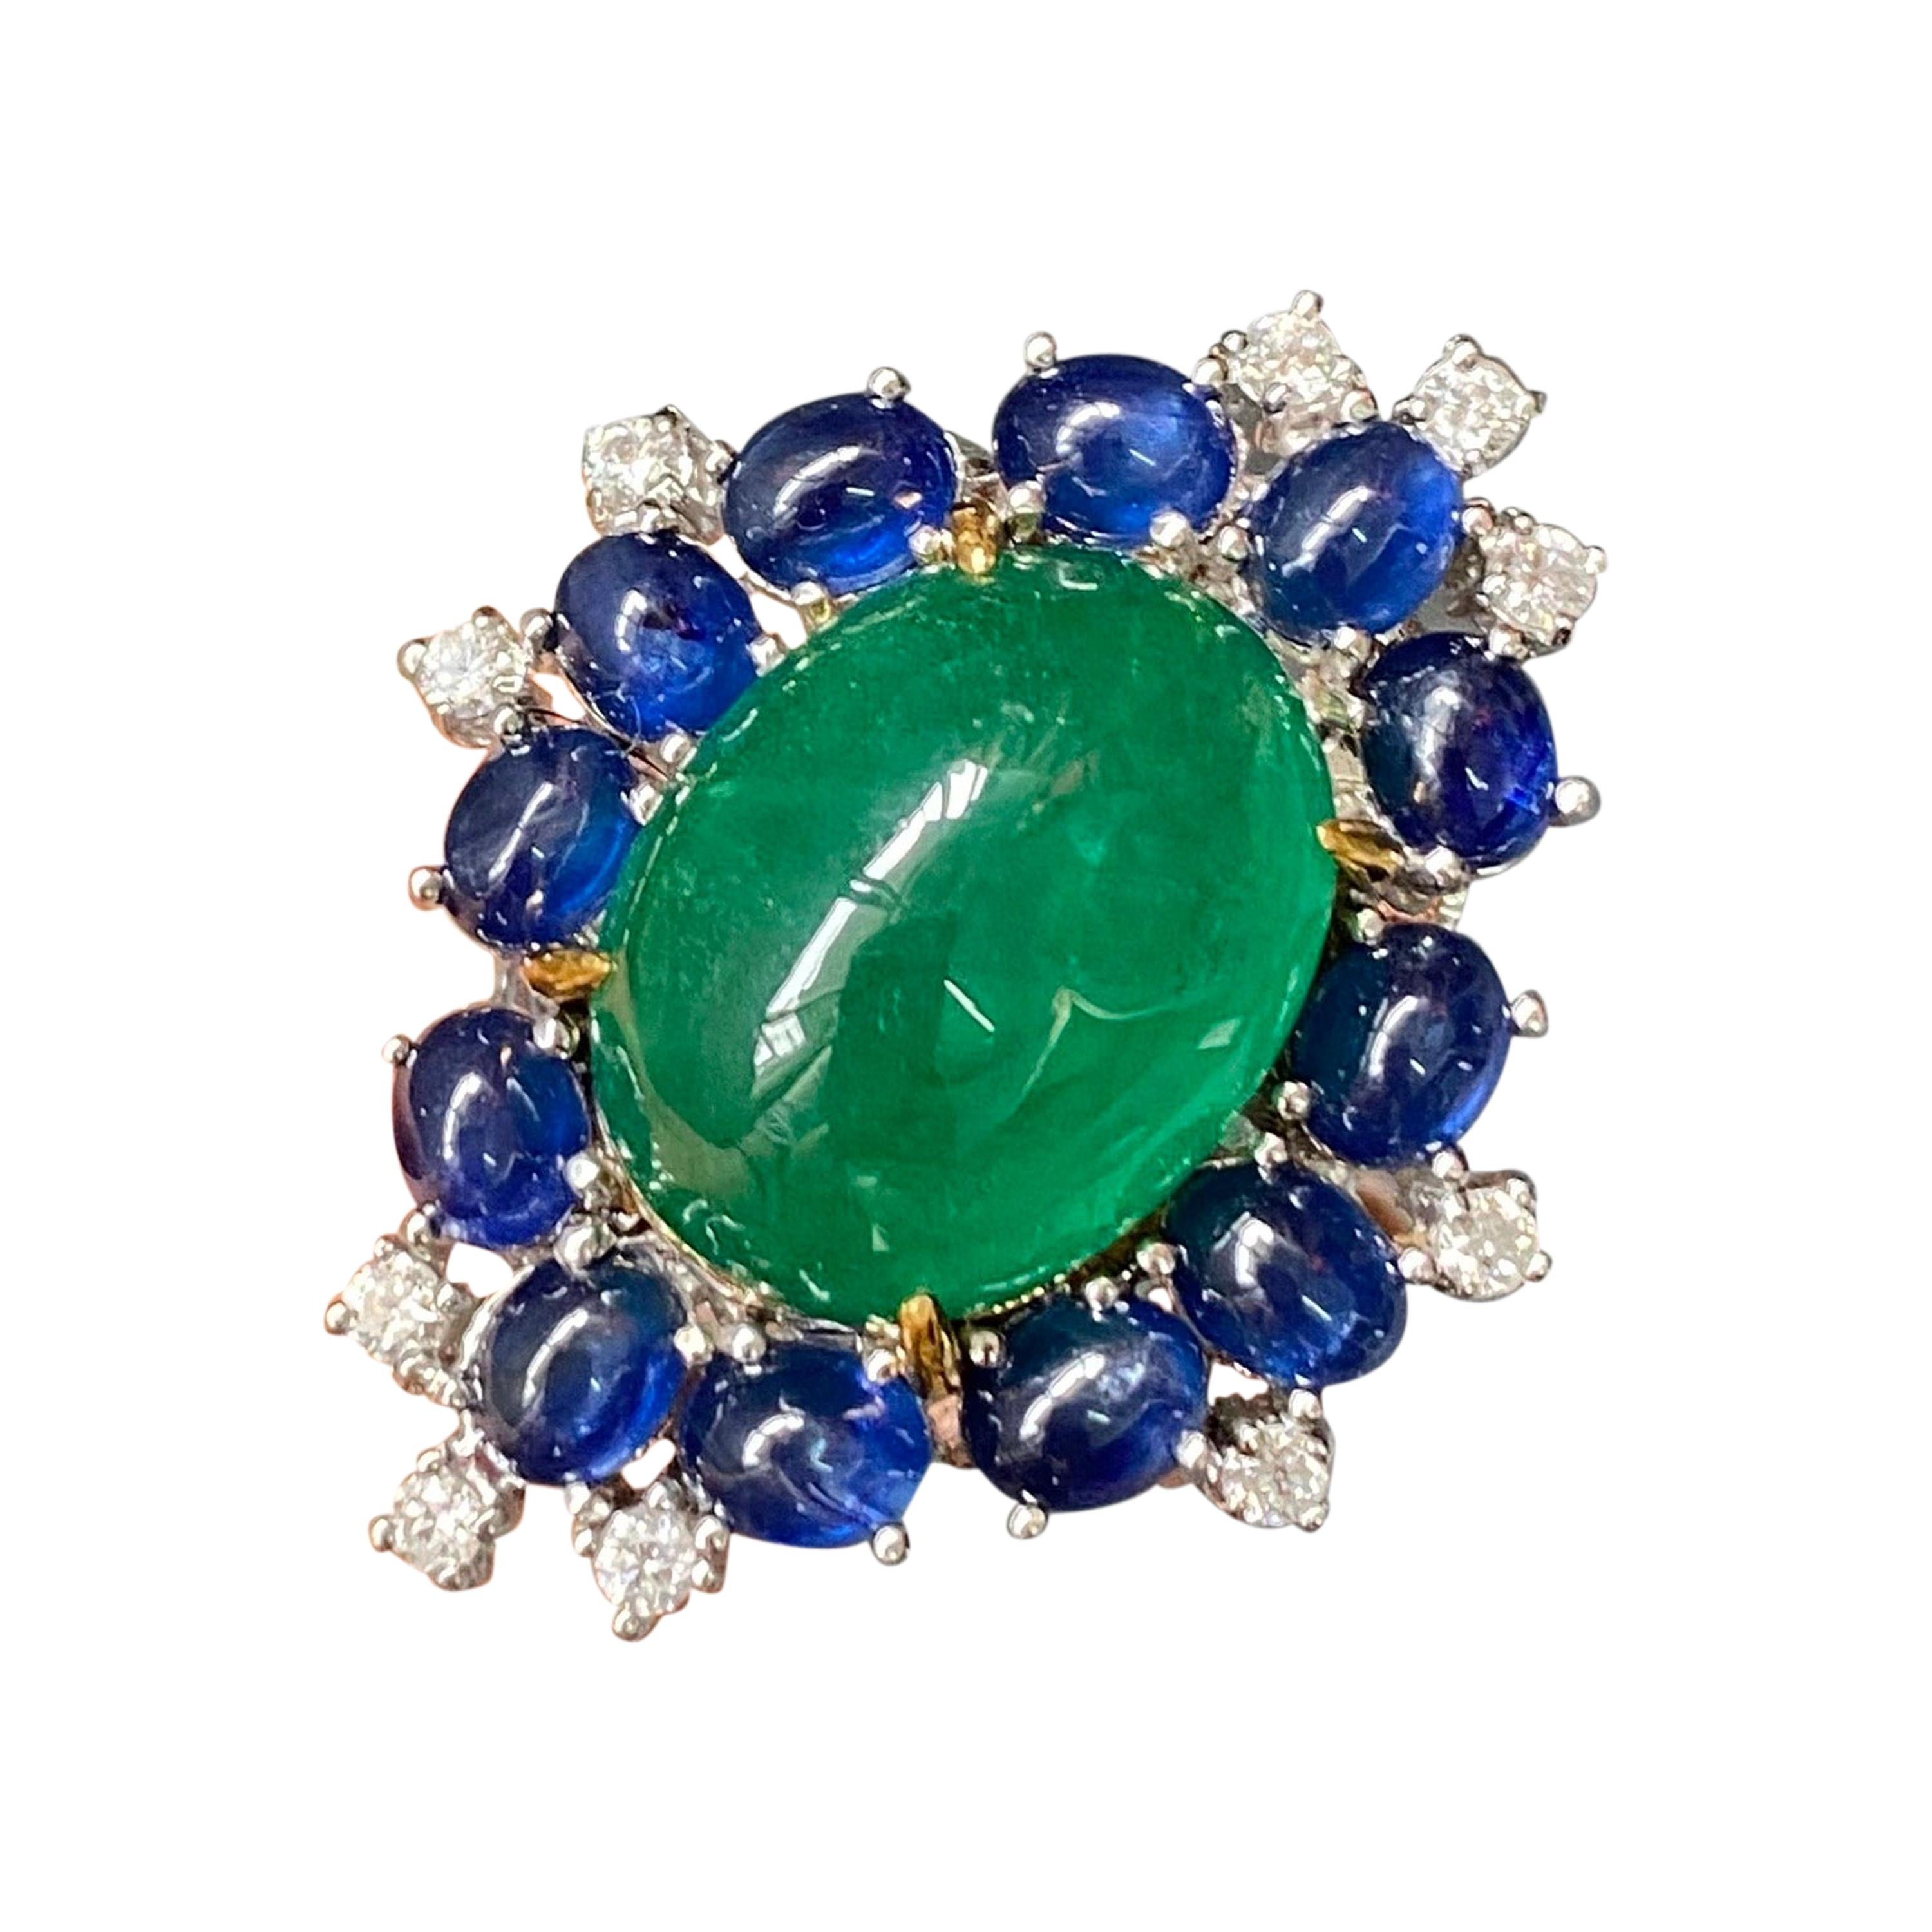 14.73 Carat Cabochon Emerald and Sapphire Cocktail Ring